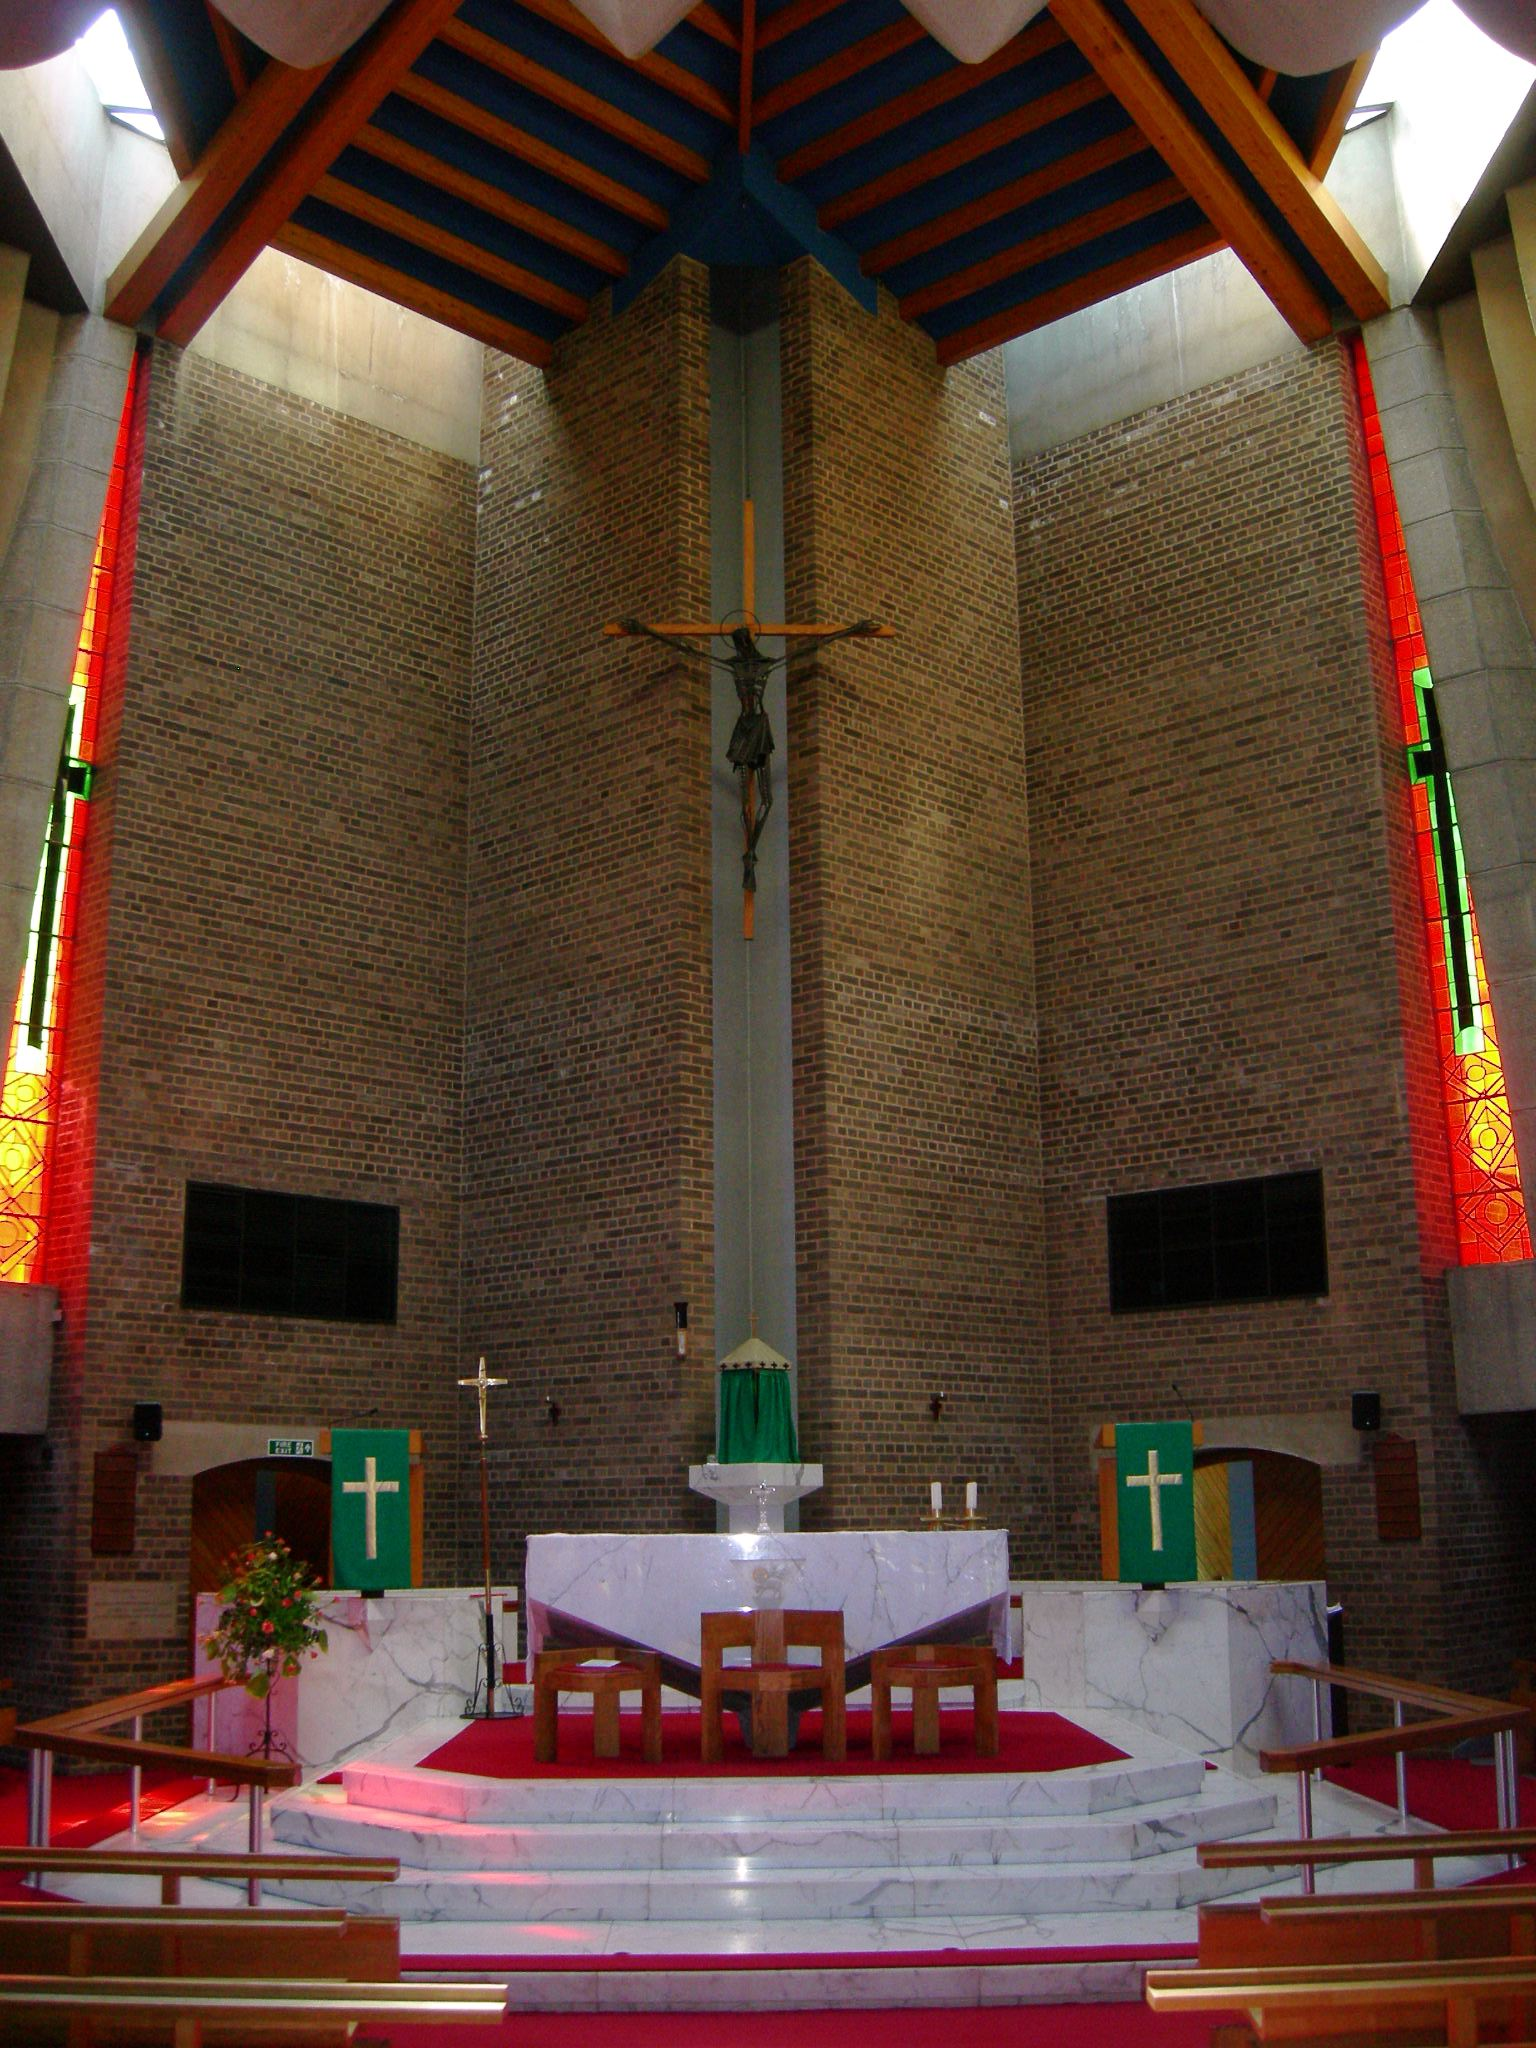 West Midlands, KITTS GREEN, Birmingham, Our Lady Help of Christians (c APEC Architects)